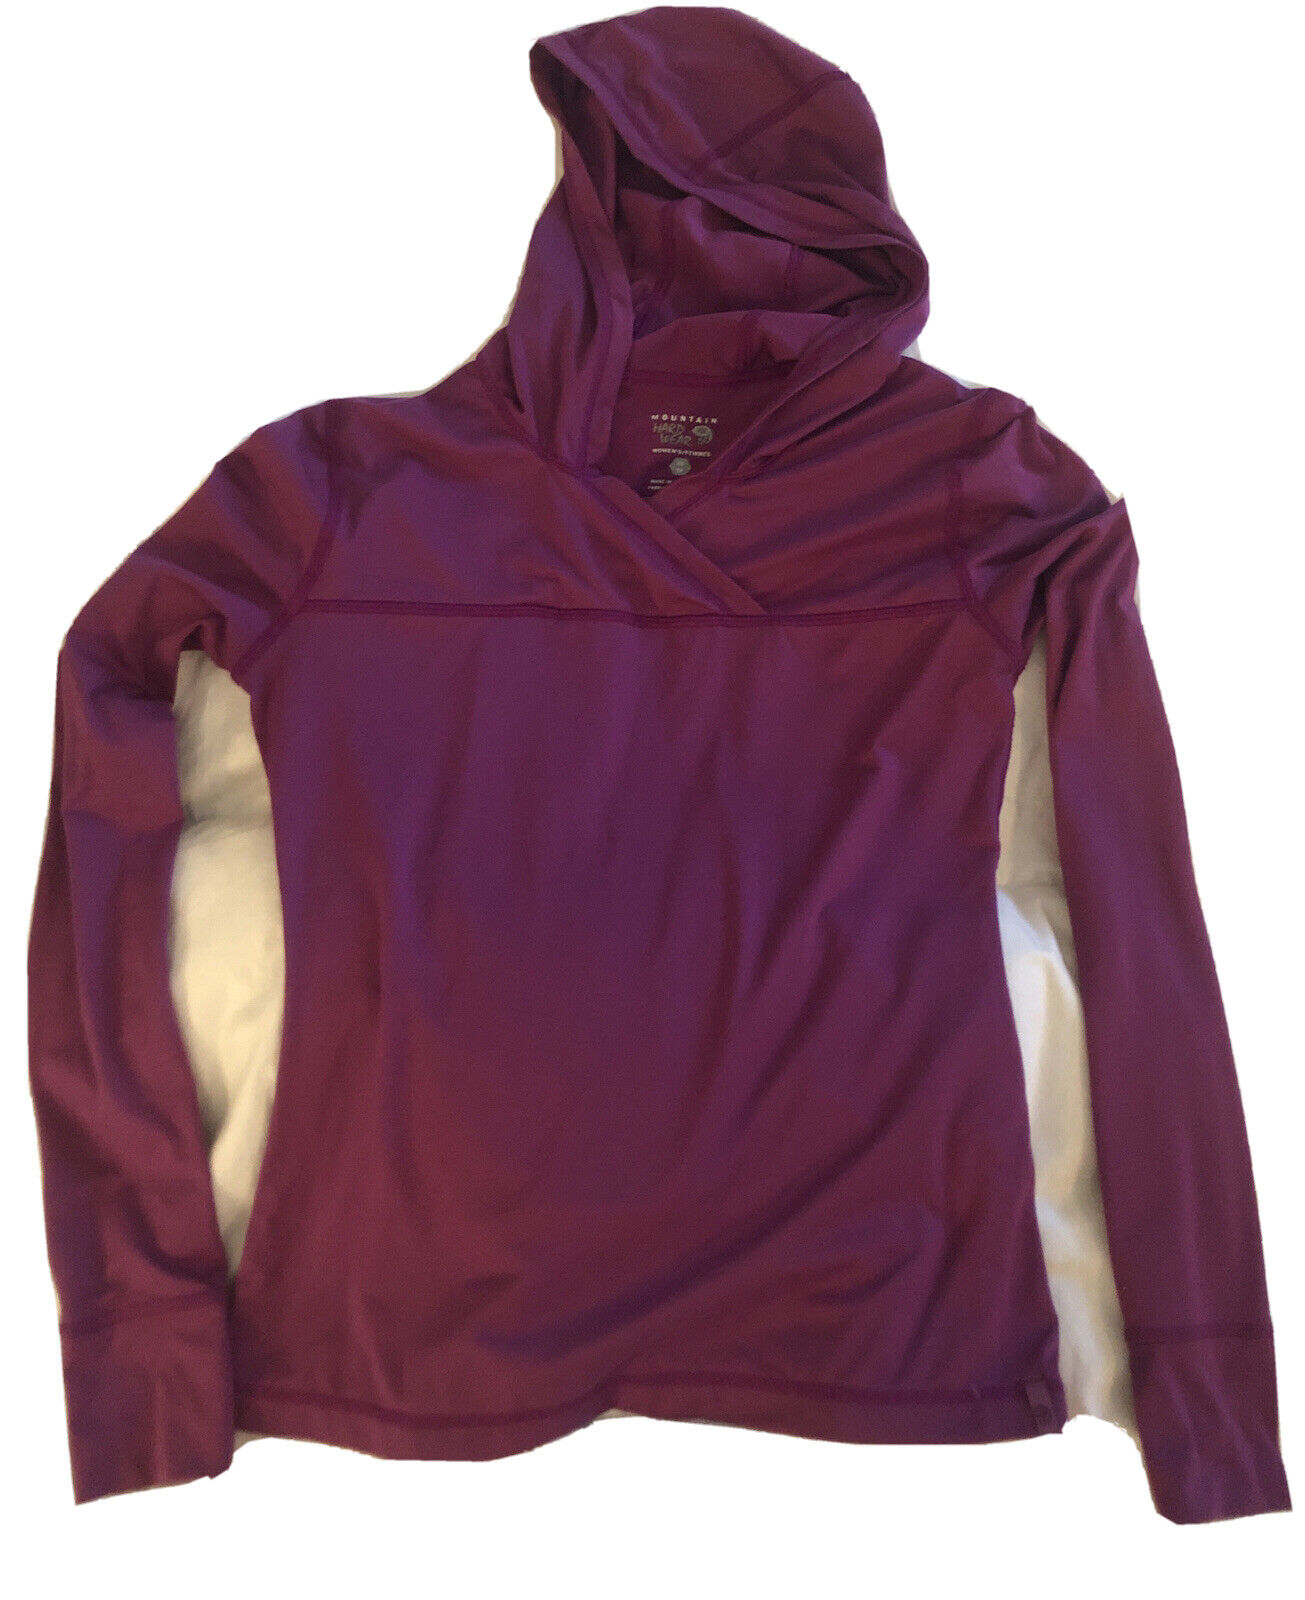 Mountain Hardware Women's XS Pull Over Hooded Top Active Outdoor Hike Camp Pink